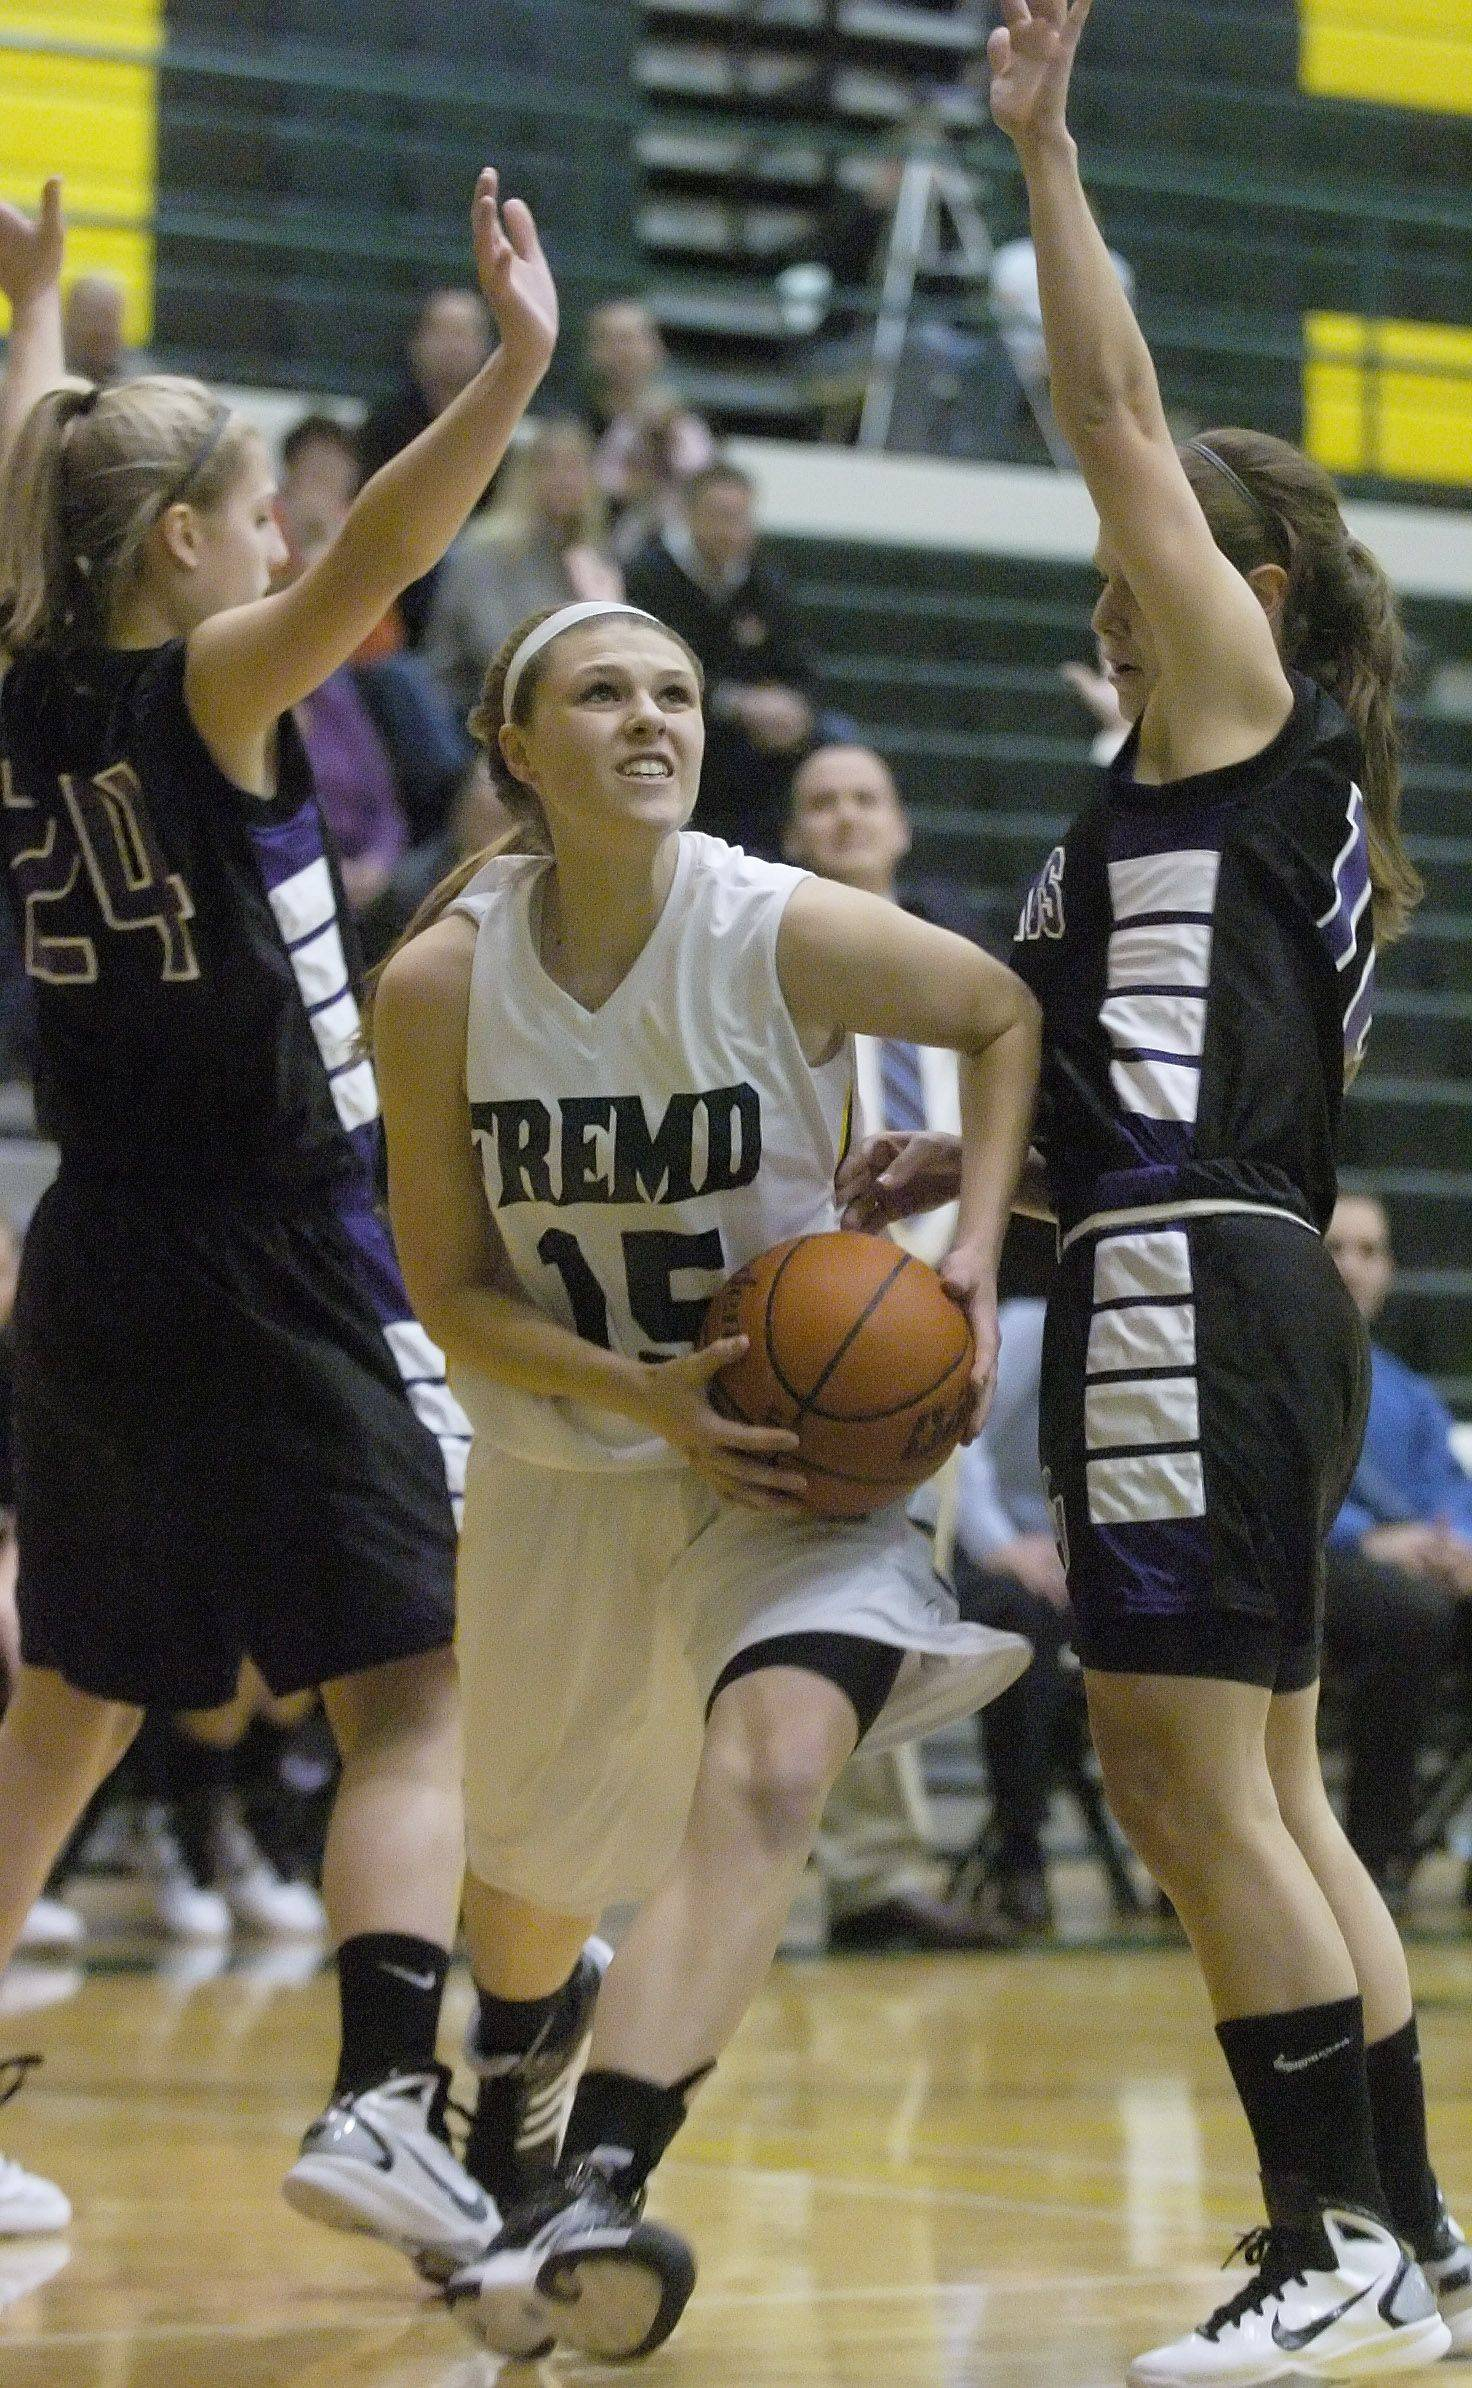 Jaimie Groot of Fremd, middle, steps between Alexis Glasgow, left, and Madelynn Conlin of Rolling Meadows.